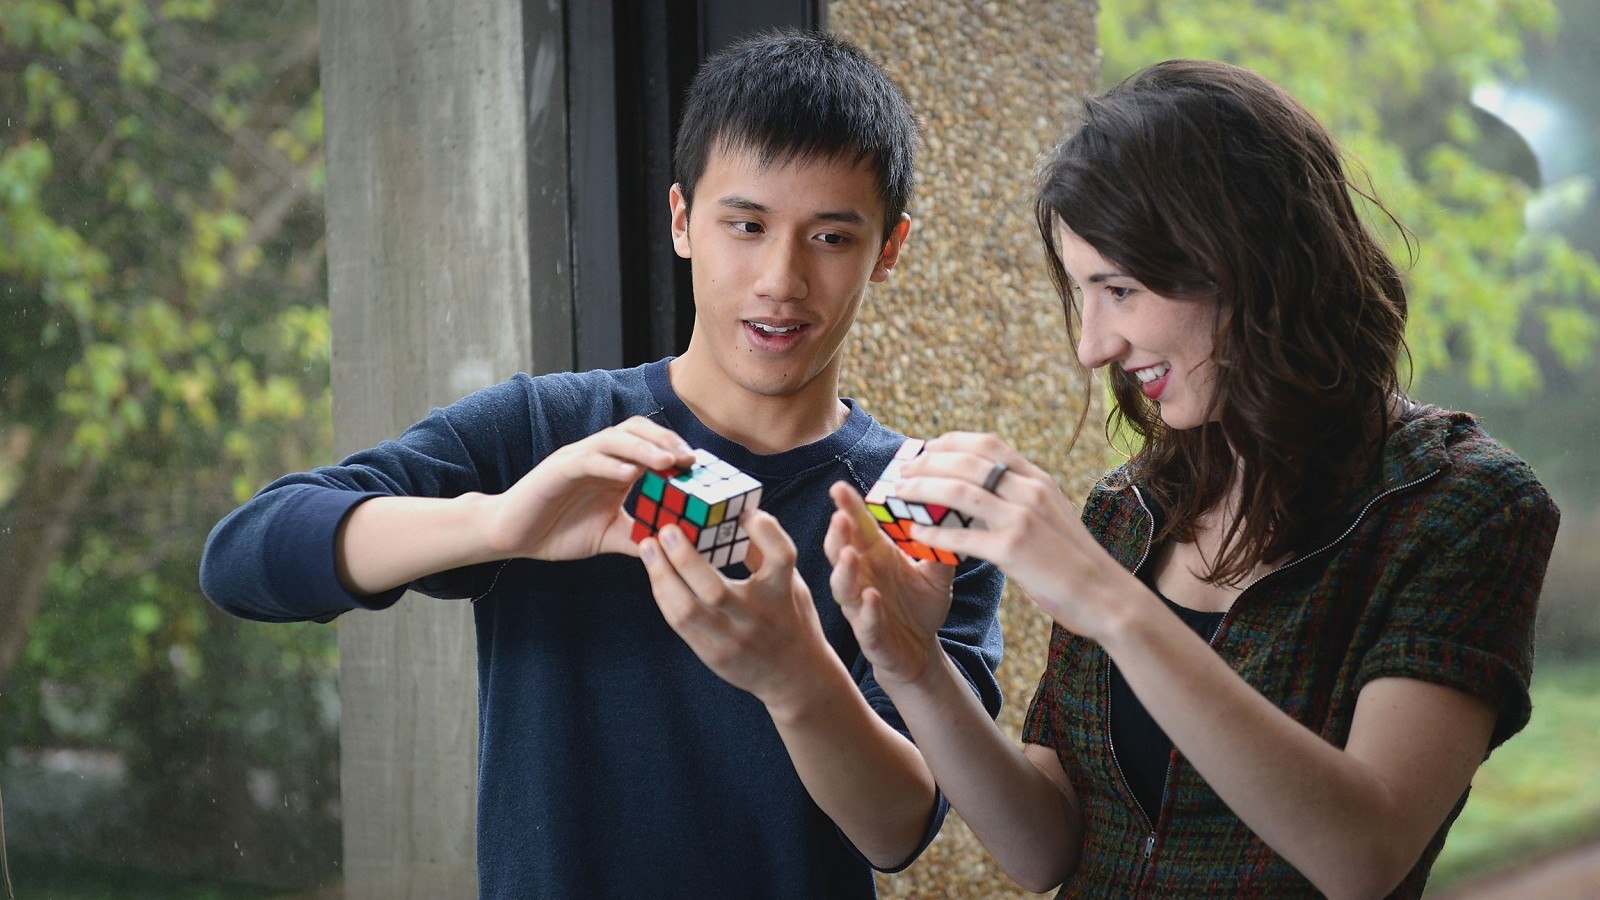 student with Rubik's Cube